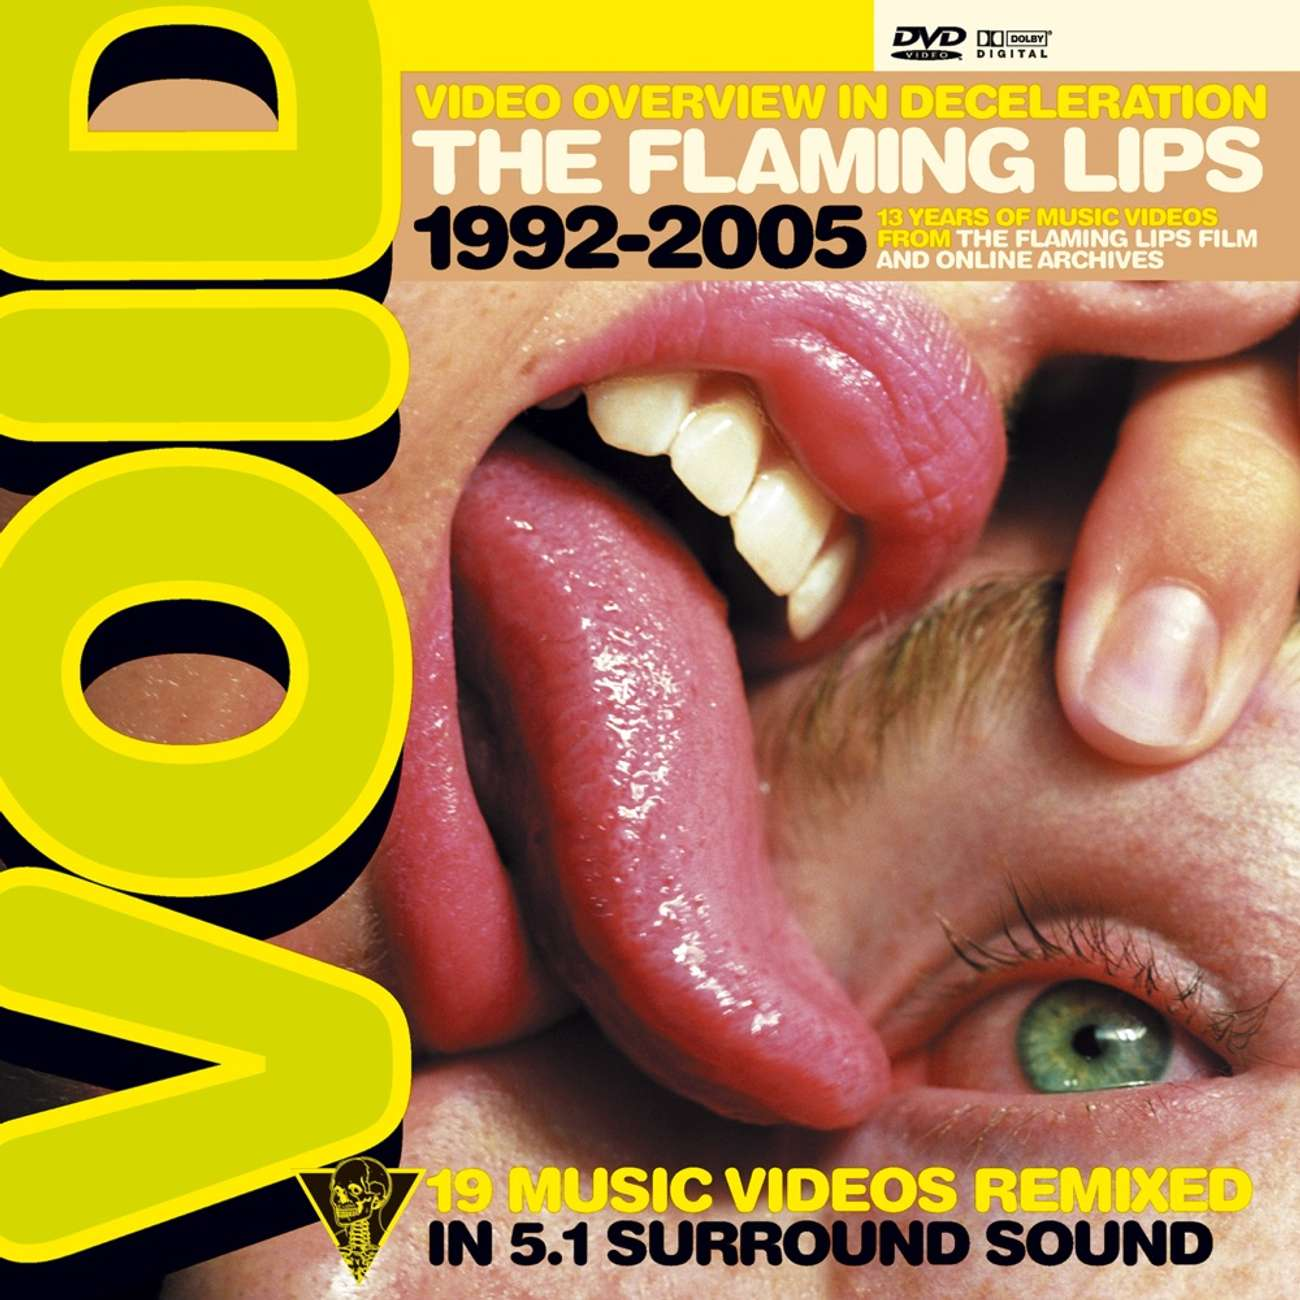 Bad Days (Aurally Excited Version) by The Flaming Lips